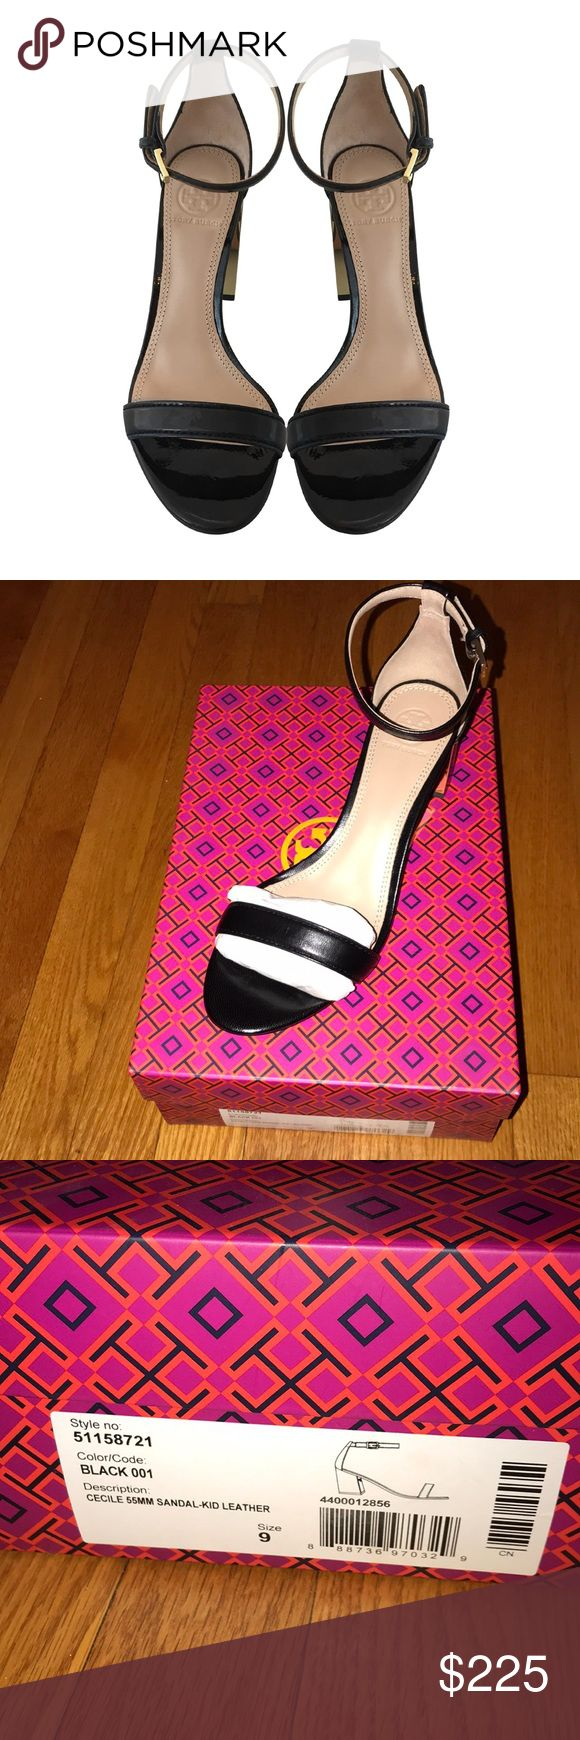 Tory Burch Cecile black leather sandal size 9 NIB